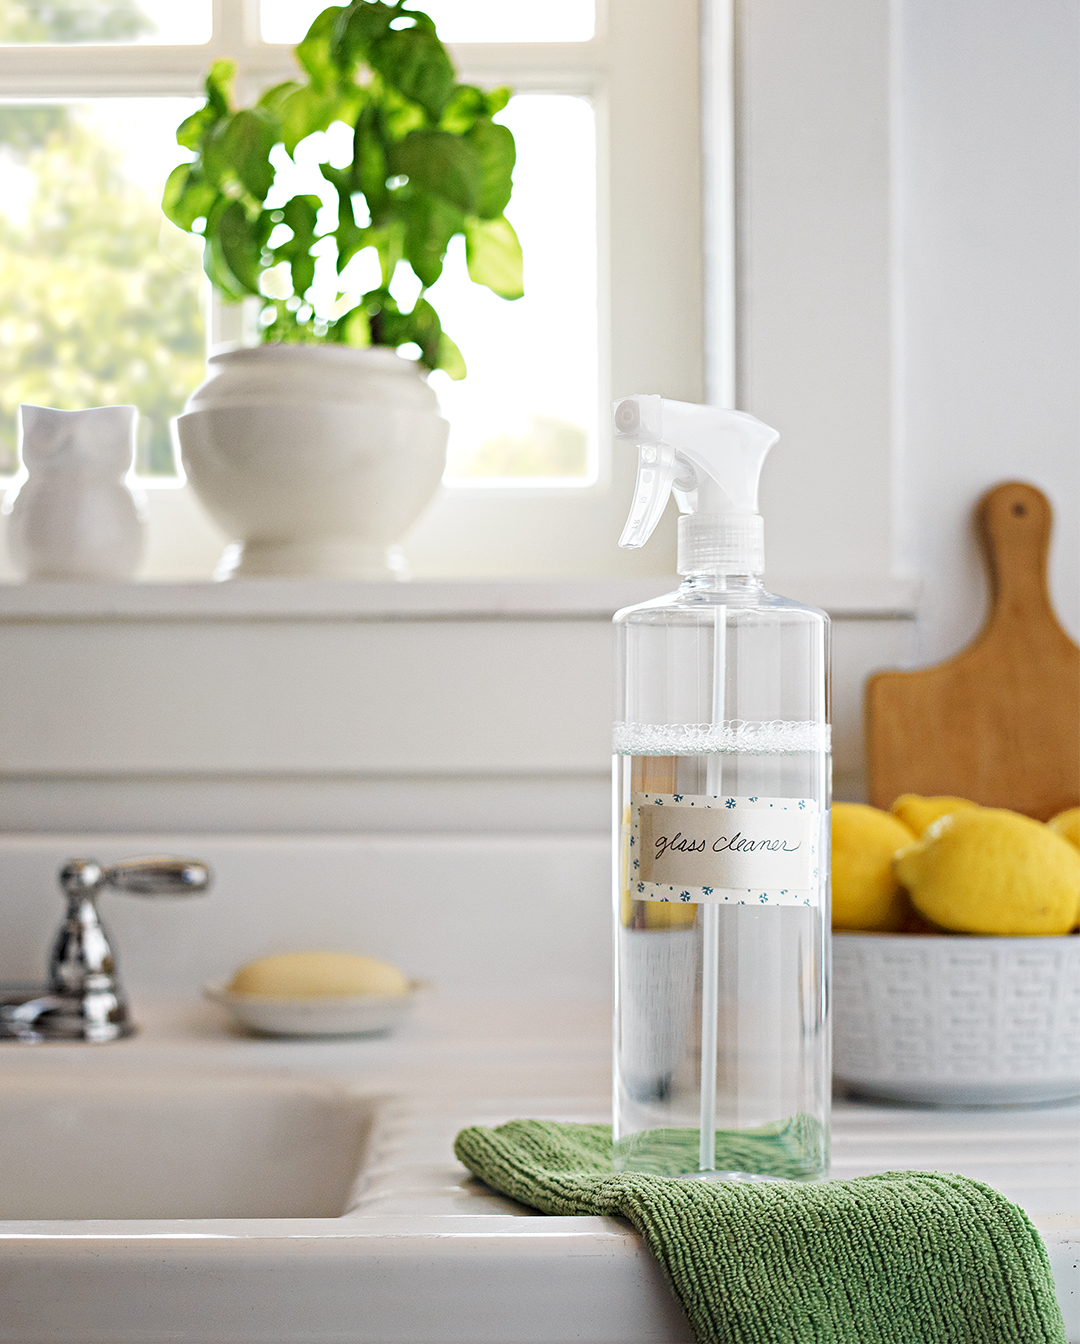 homemade glass cleaner on counter kitchen sink window